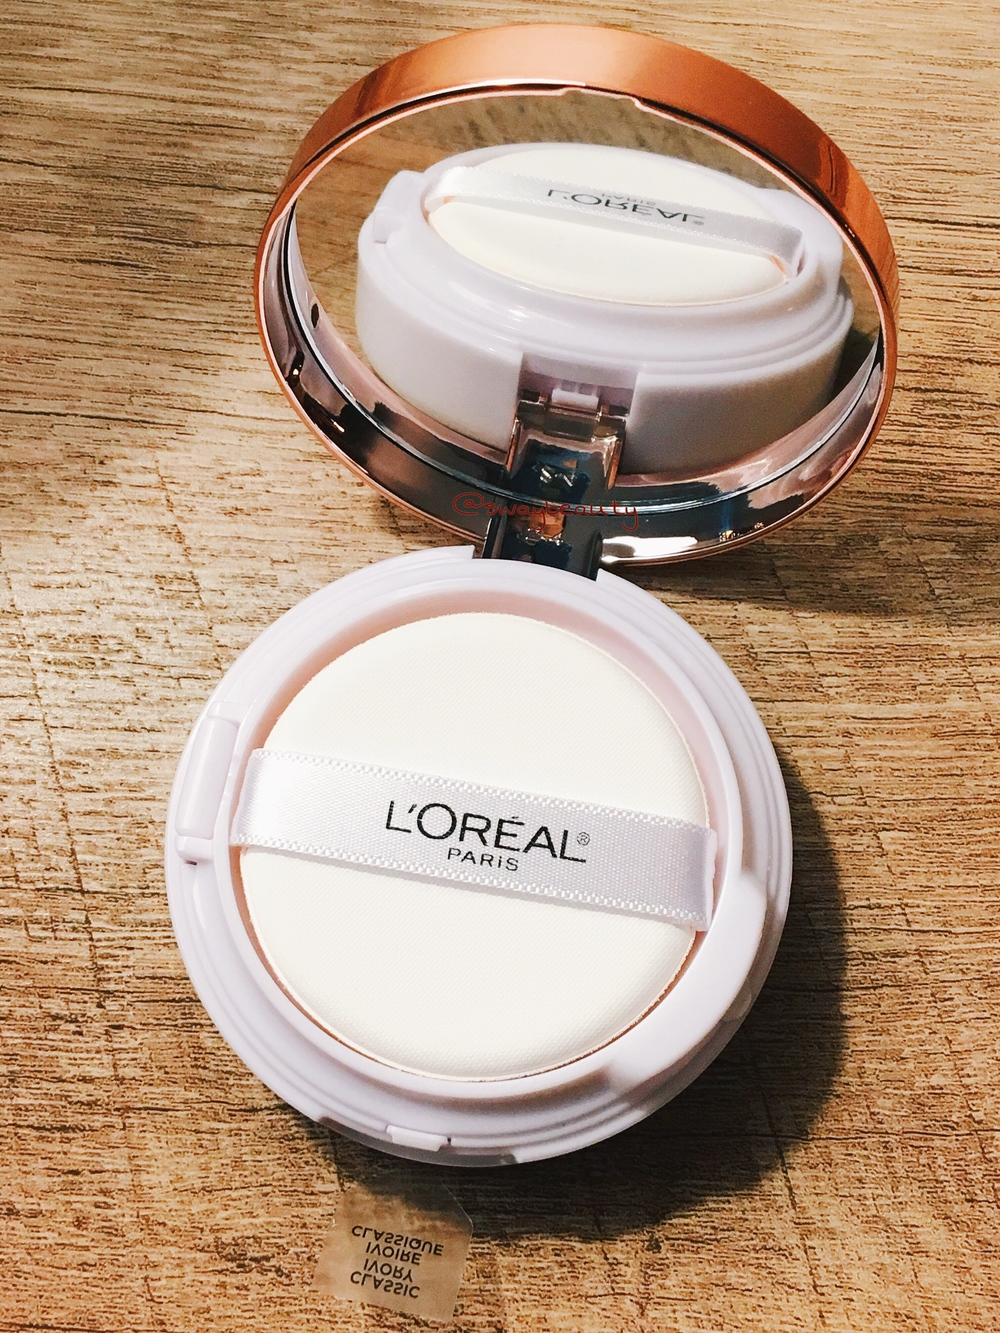 Loreal True Match Lumi Cushion Foundation Review Tracys Way Buildable Luminous Is Described As A Liquid That Provides Fresh Look Easily For